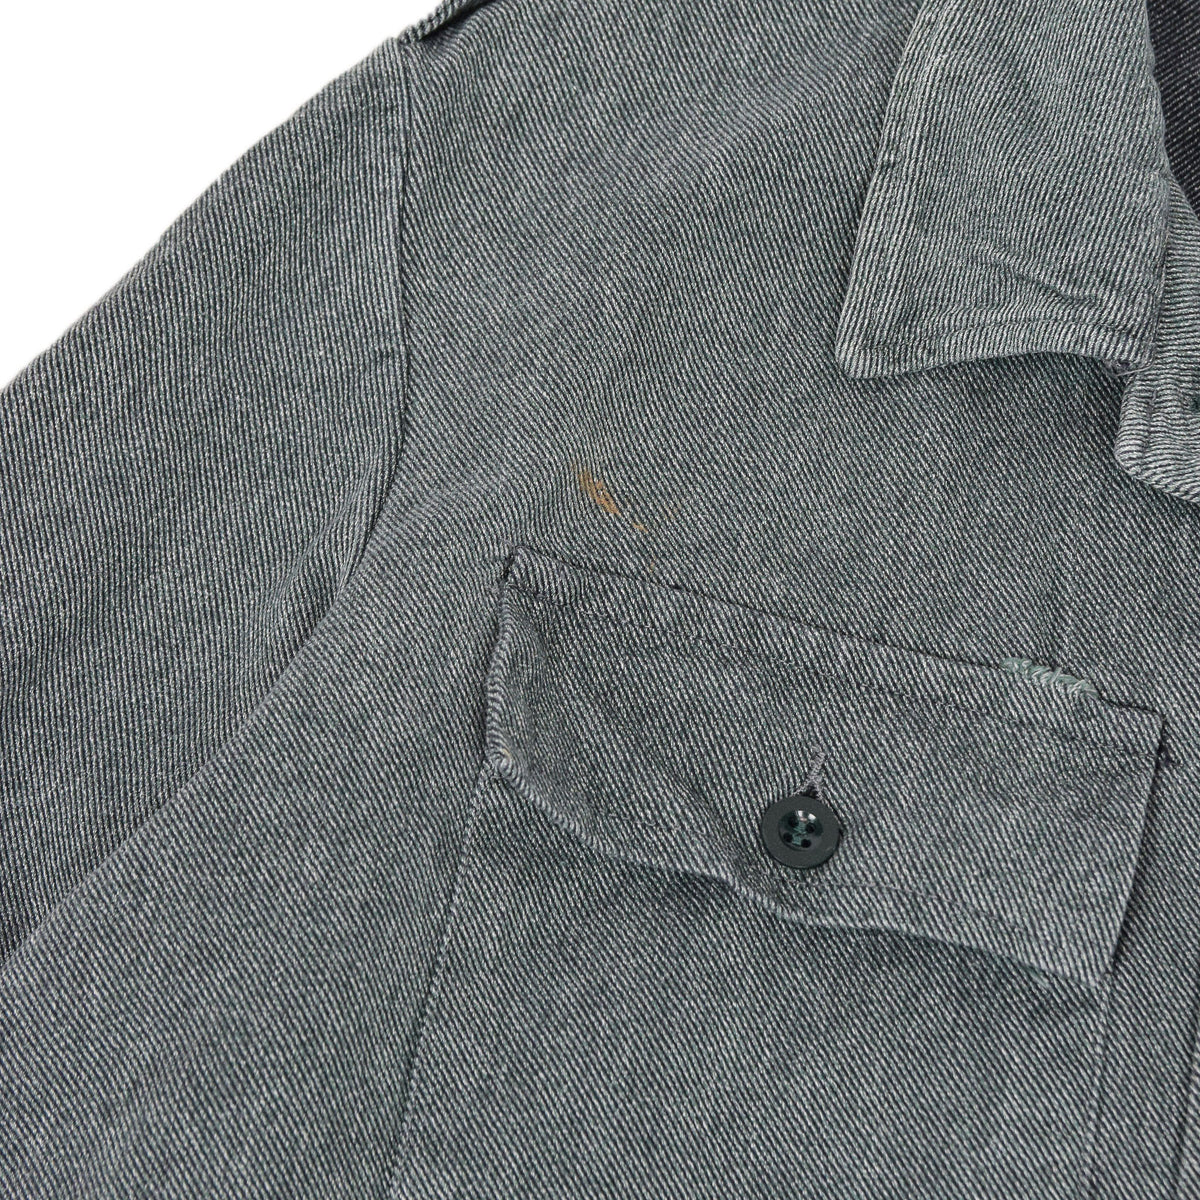 Vintage 60s Swiss Army Salt & Pepper Denim Worker Chore Jacket L chest mark